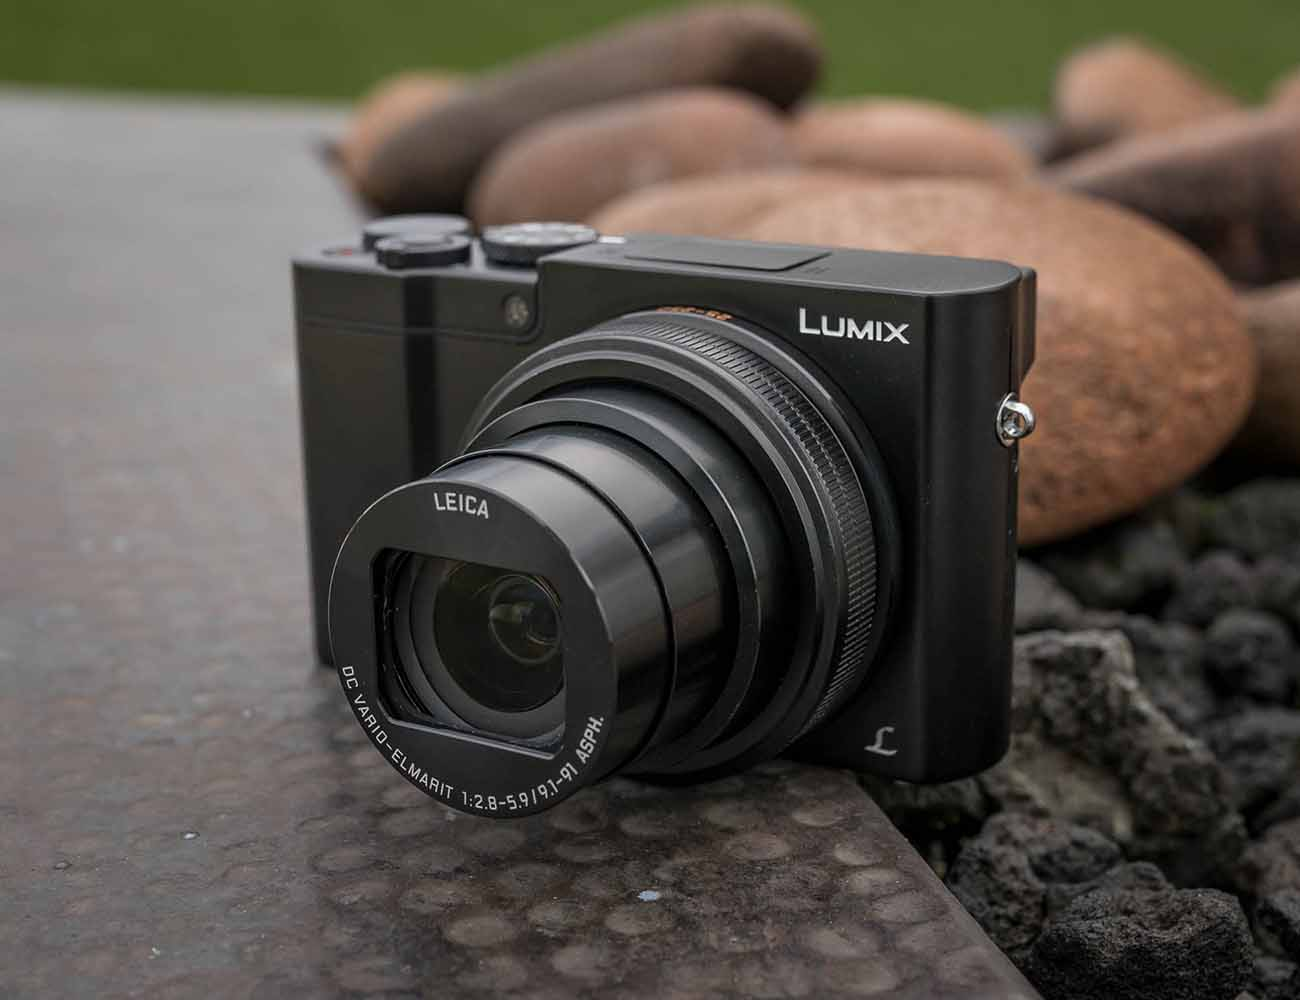 lumix zs100 4k digital camera with 20 mp sensor from panasonic gadget flow. Black Bedroom Furniture Sets. Home Design Ideas